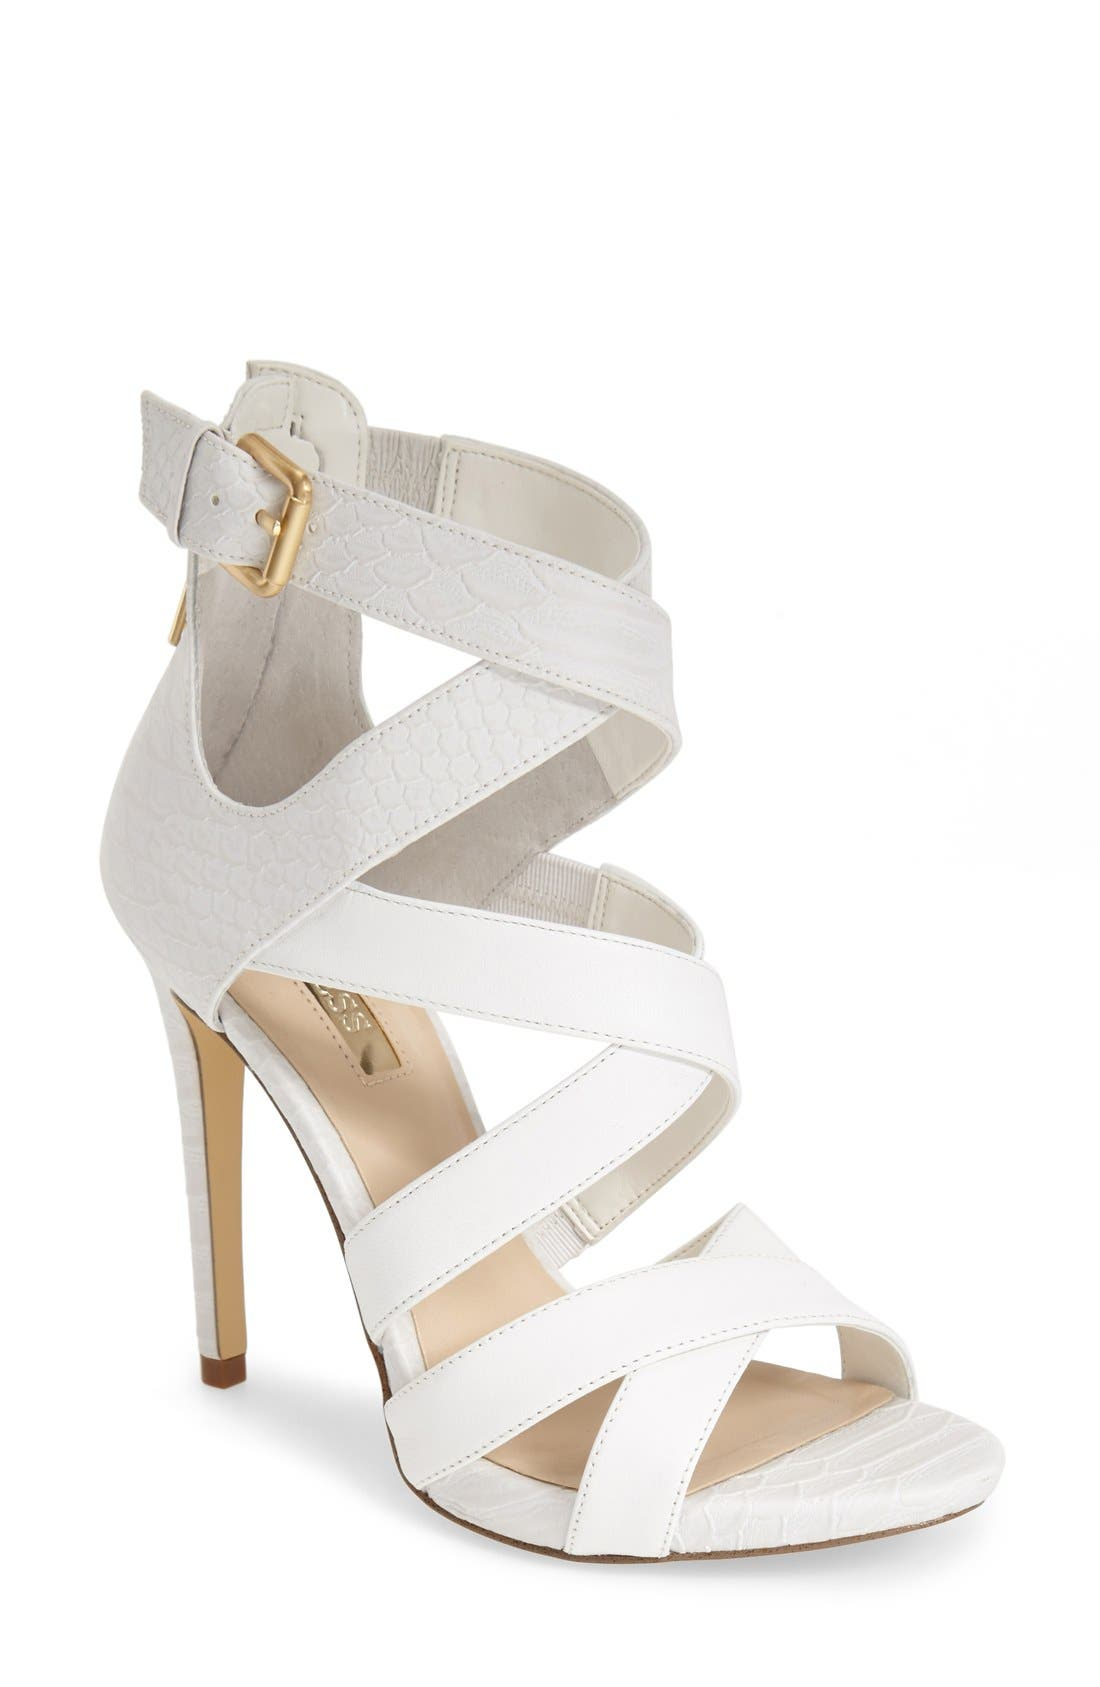 Alternate Image 1 Selected - GUESS 'Abby' Strappy Sandal (Women)